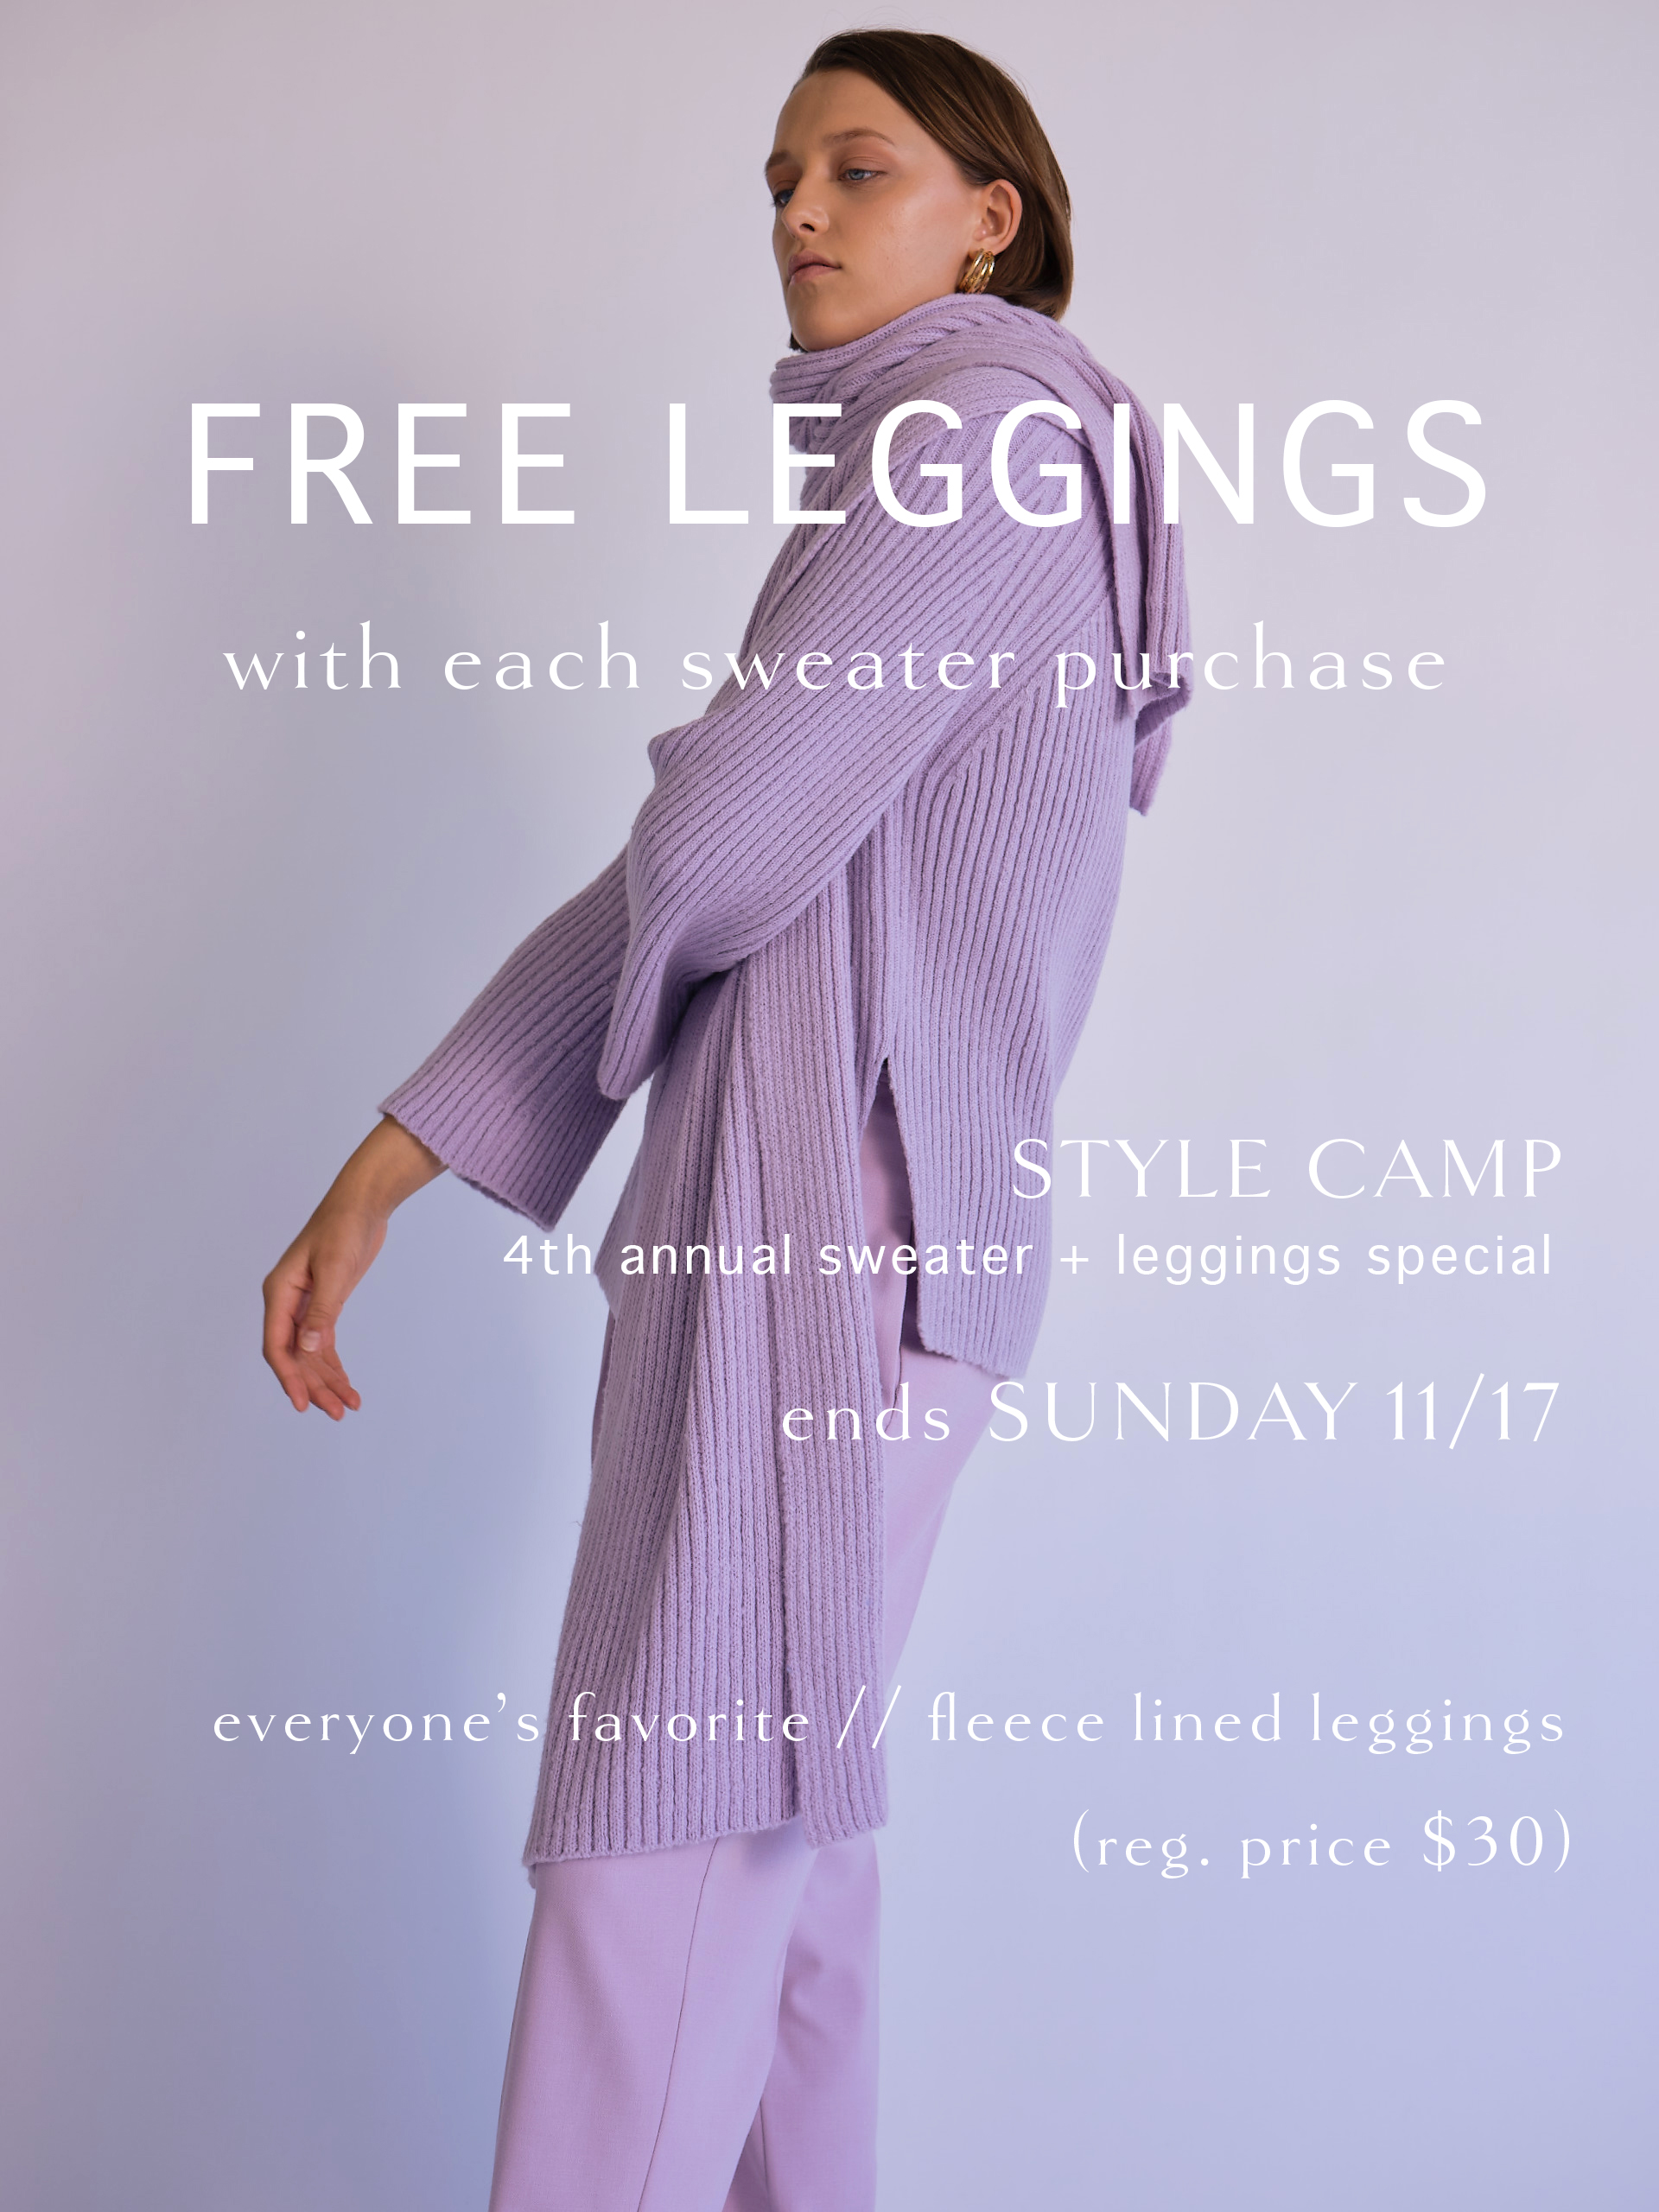 free leggings weekend